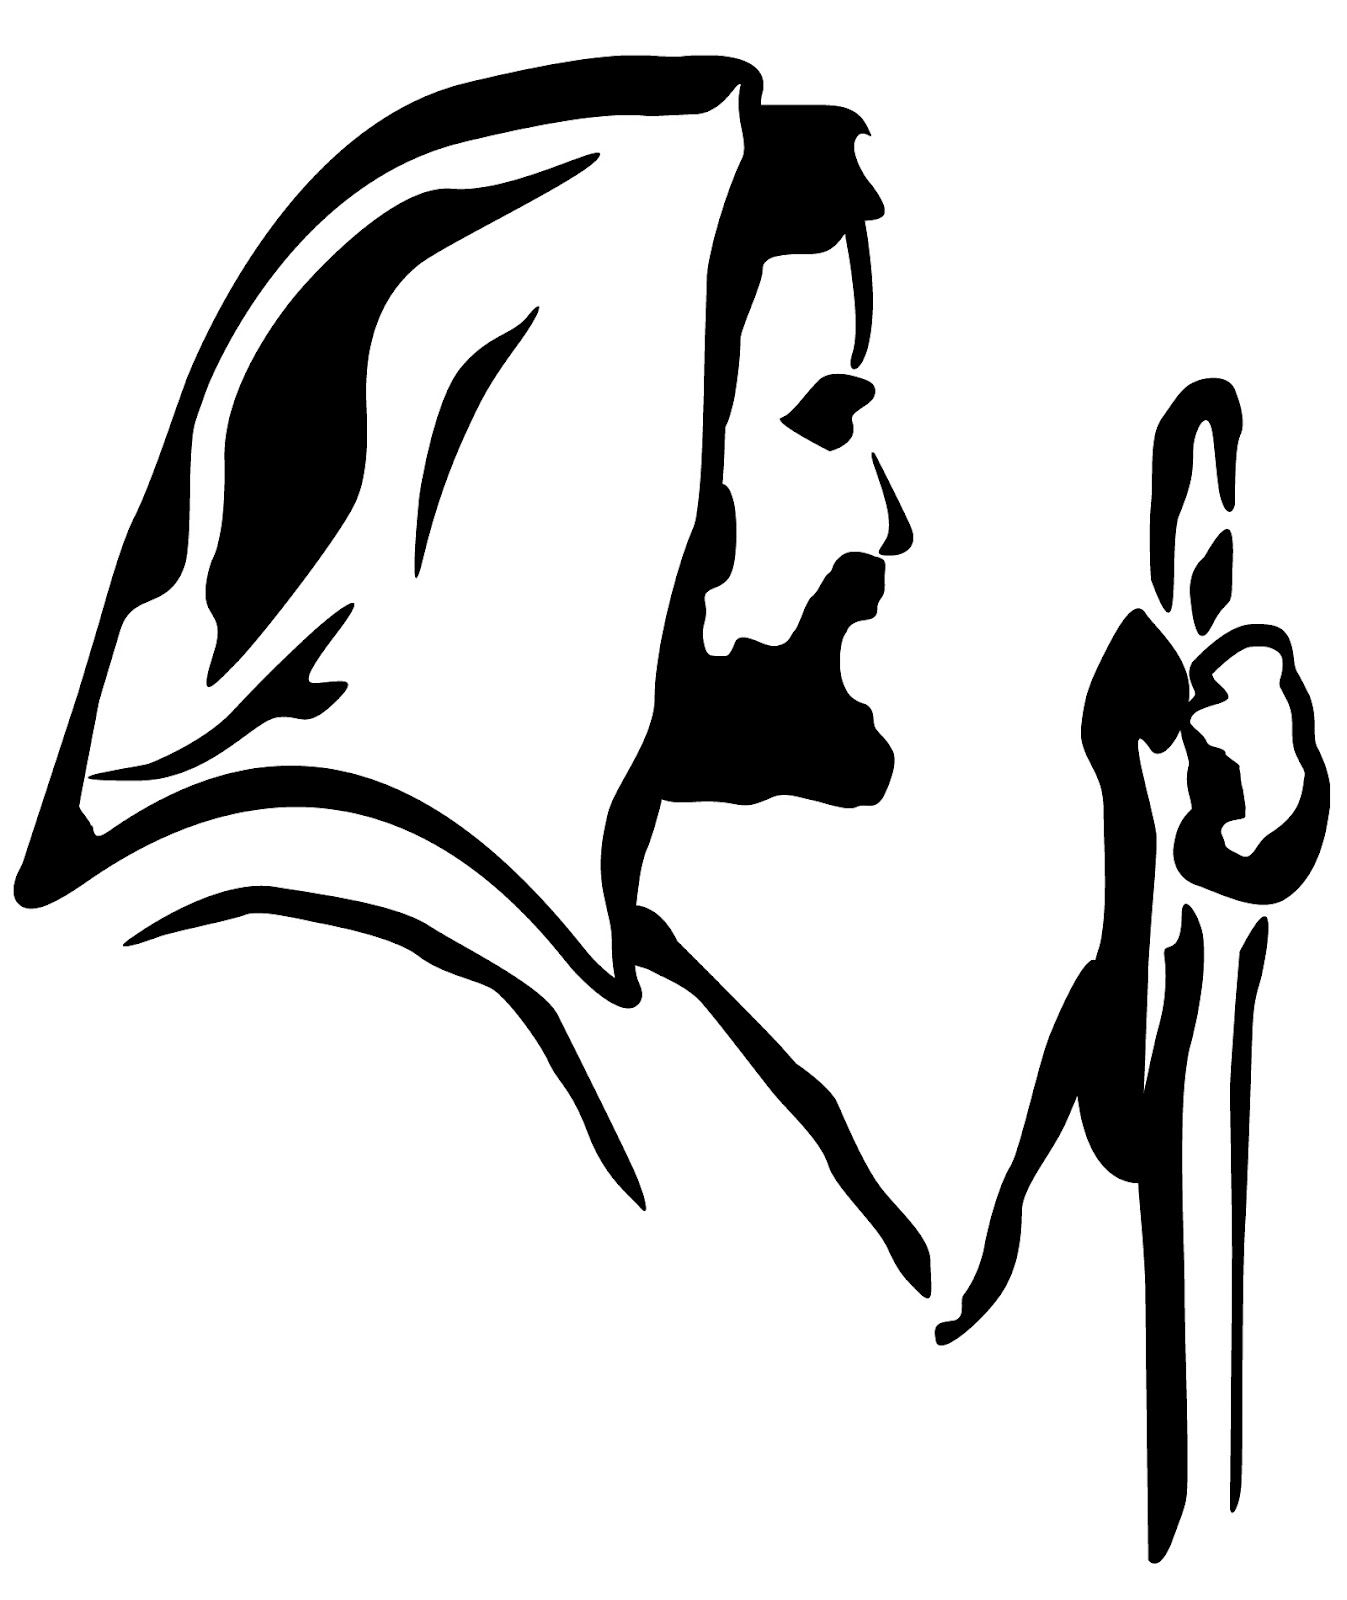 jesus clip art black and white free clipart images 3 2 clipartcow rh pinterest com free clipart jesus is stripped of his clothes free clipart jesus wept at denial of peter